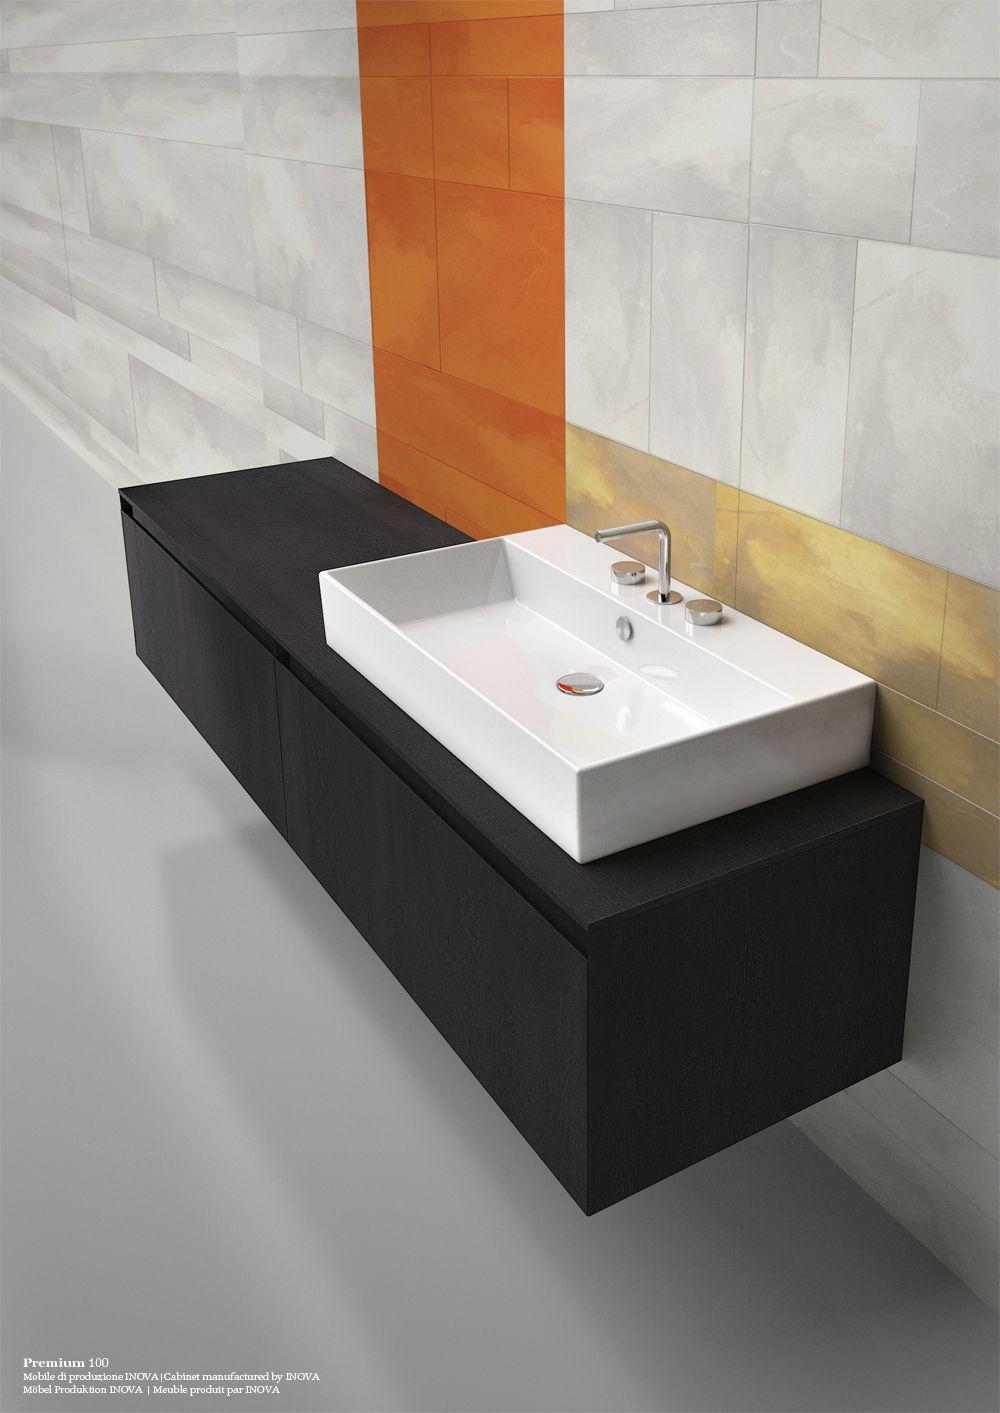 Premium 80_Washbasin with 0, 1 or 3 tapholes. Suitable for wall-hung ...